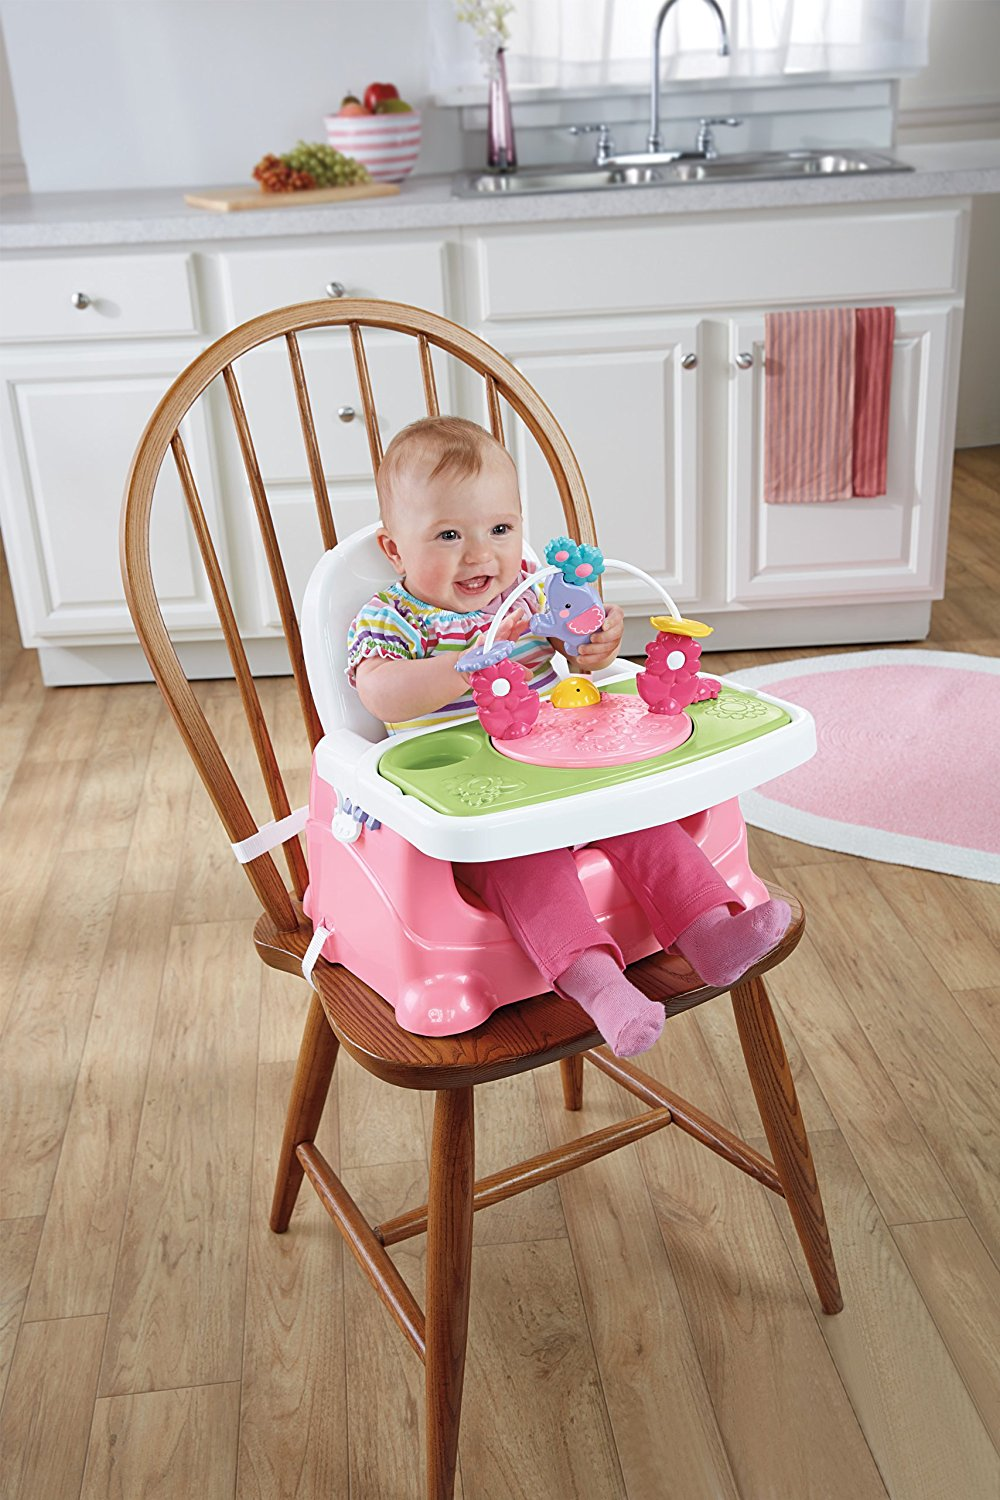 Fisher Price Pretty In Pink Elephant Booster Seat Ideal Baby Healthy Care Deluxe Blue